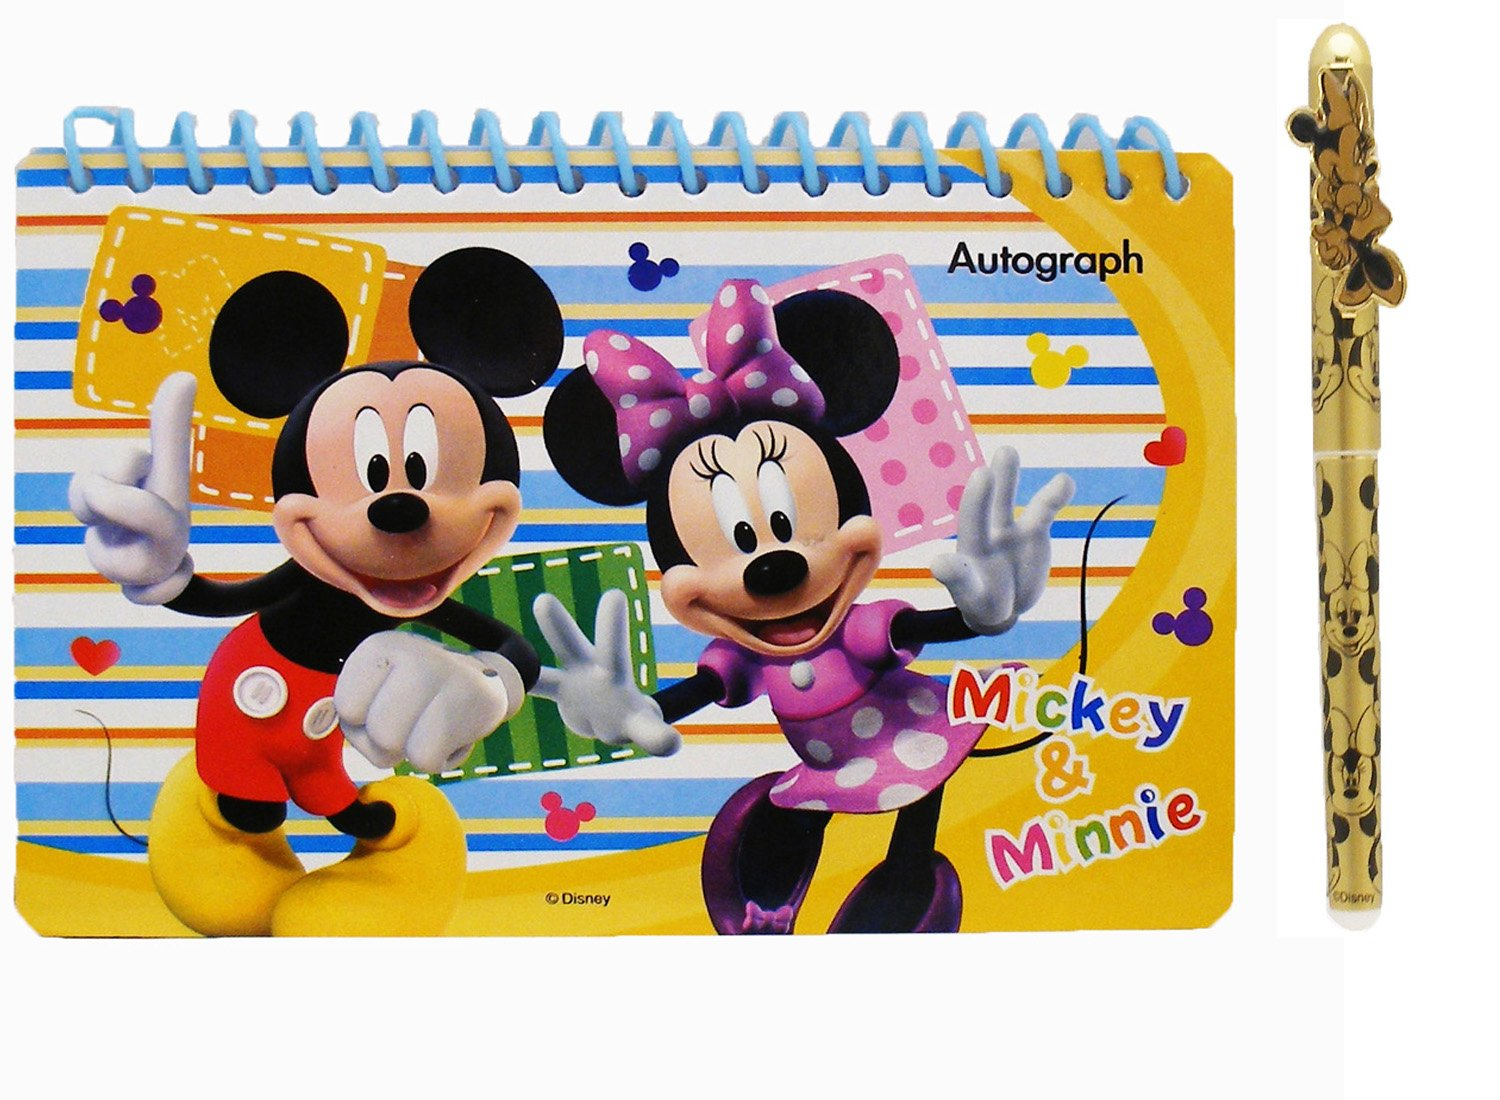 Disney Mickey Mouse and Friend Blue Autograph Book